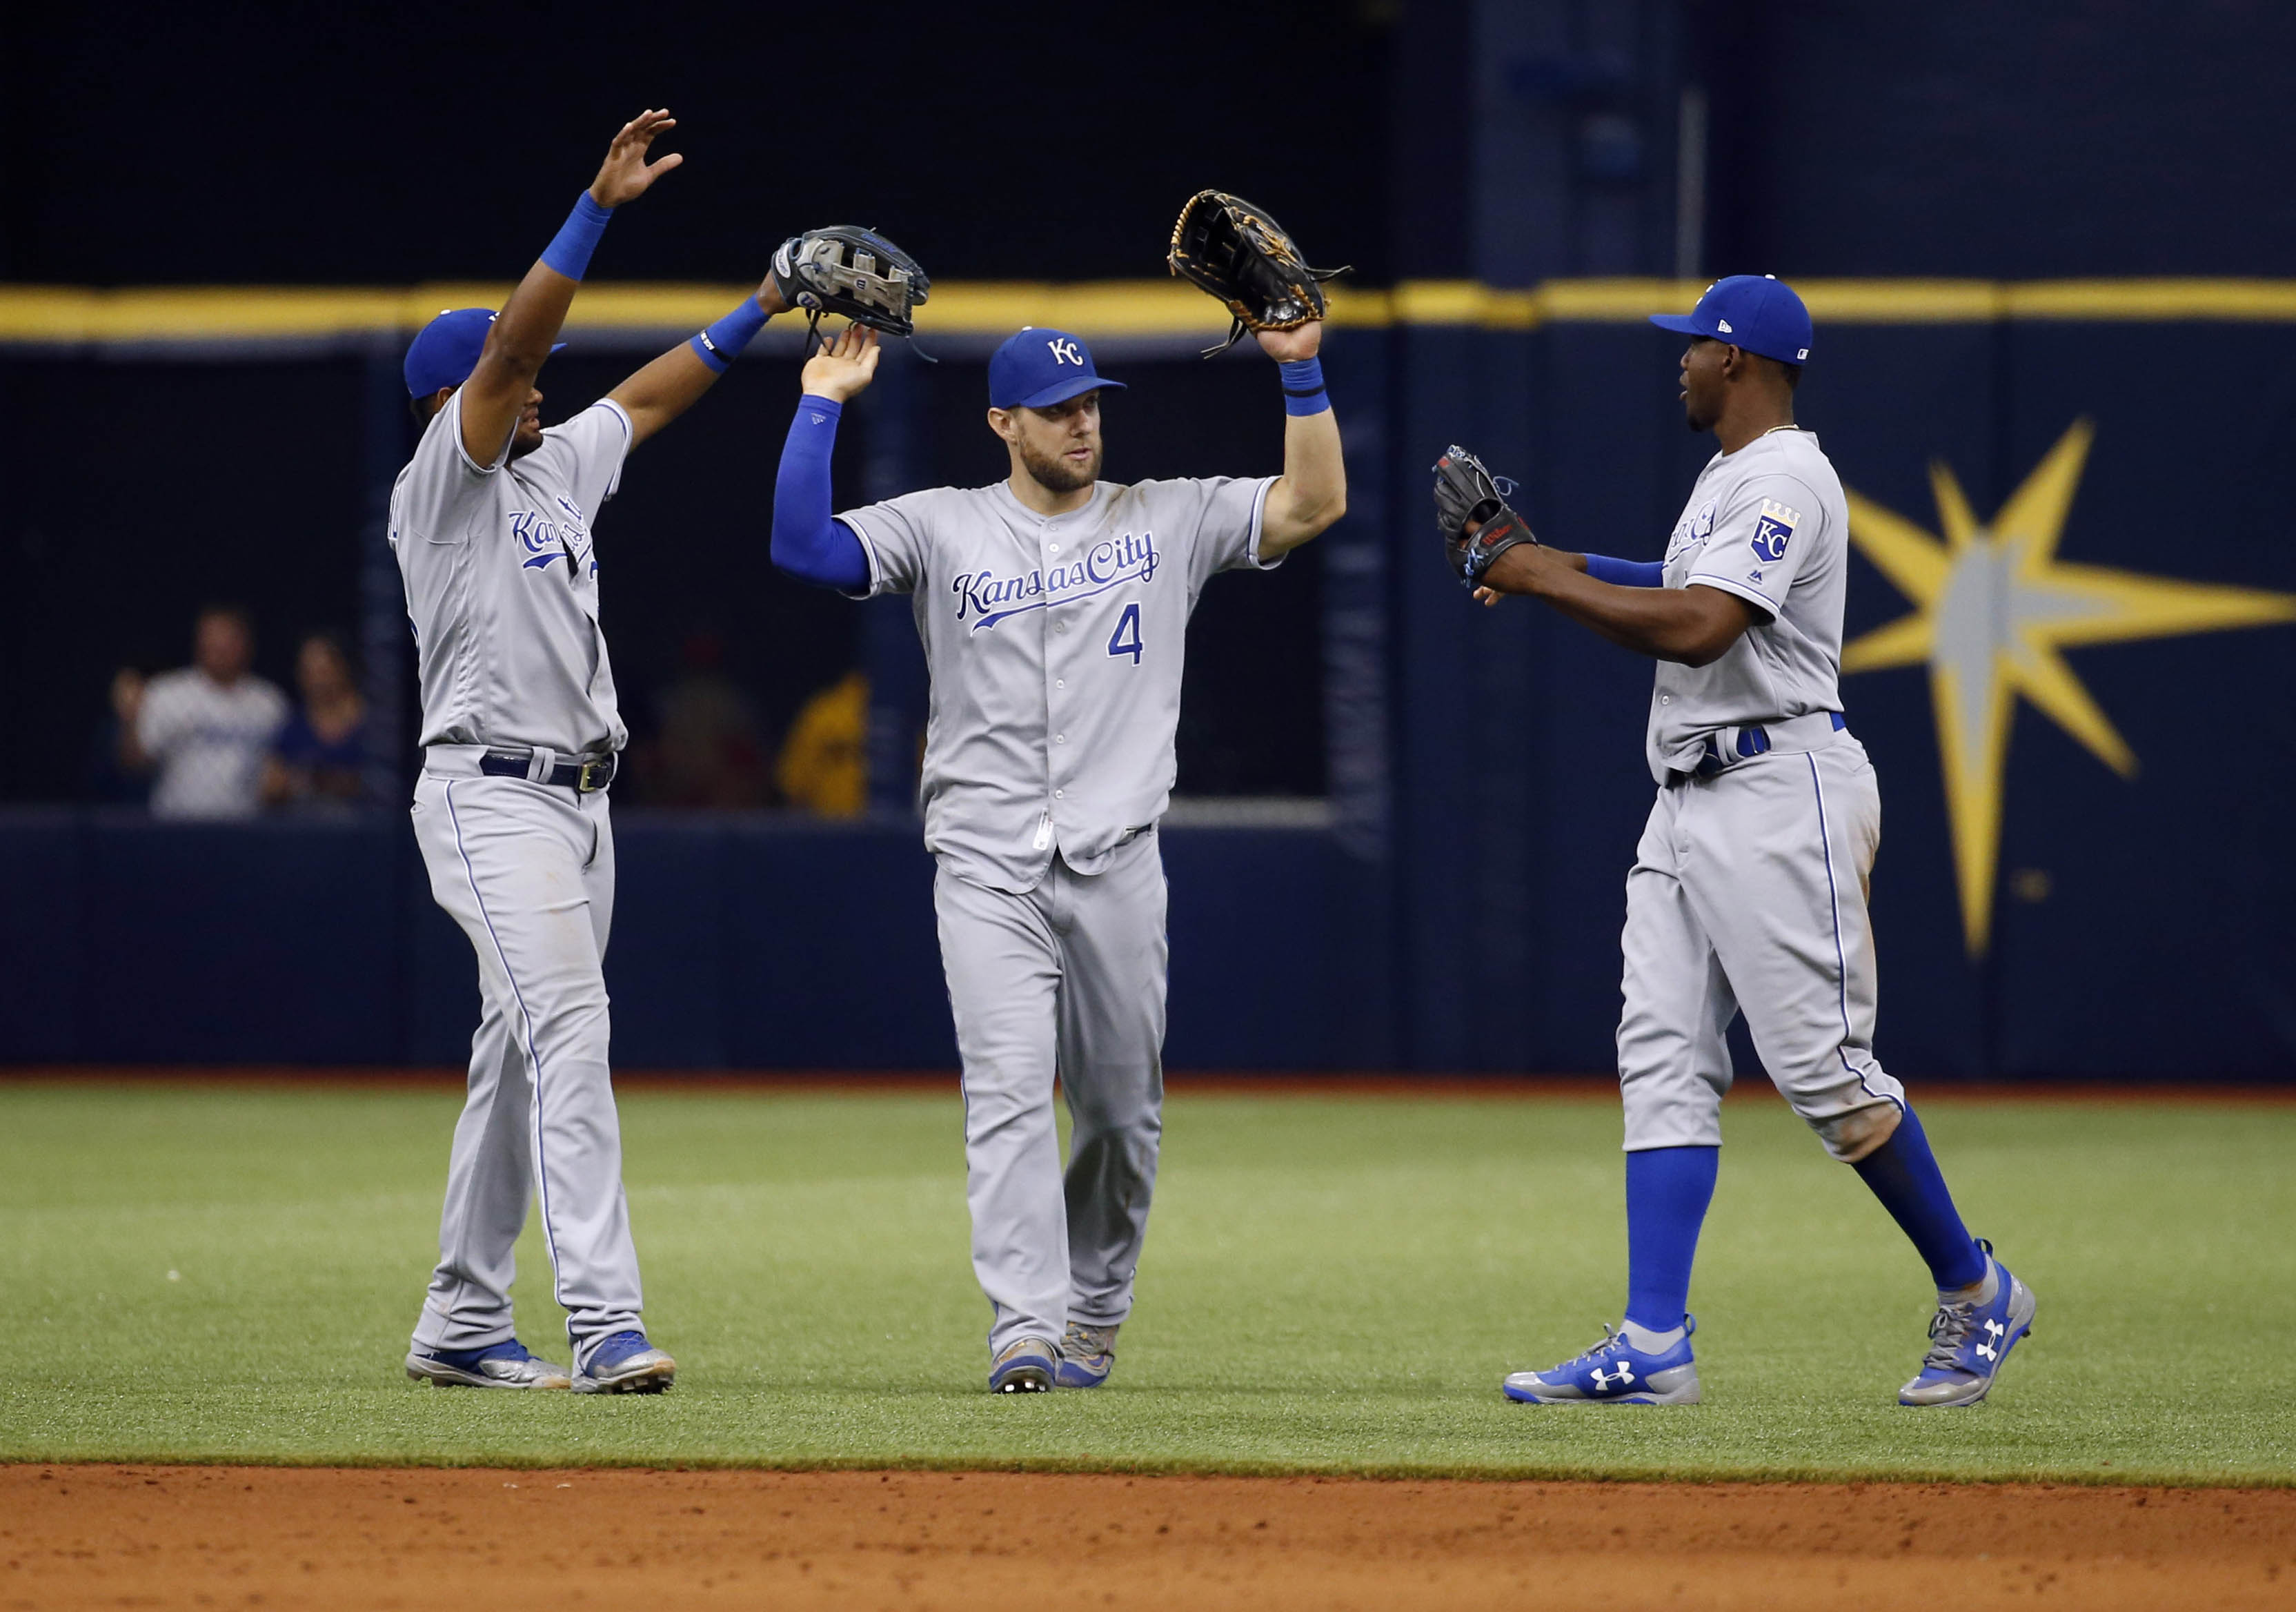 10052330-mlb-kansas-city-royals-at-tampa-bay-rays-1